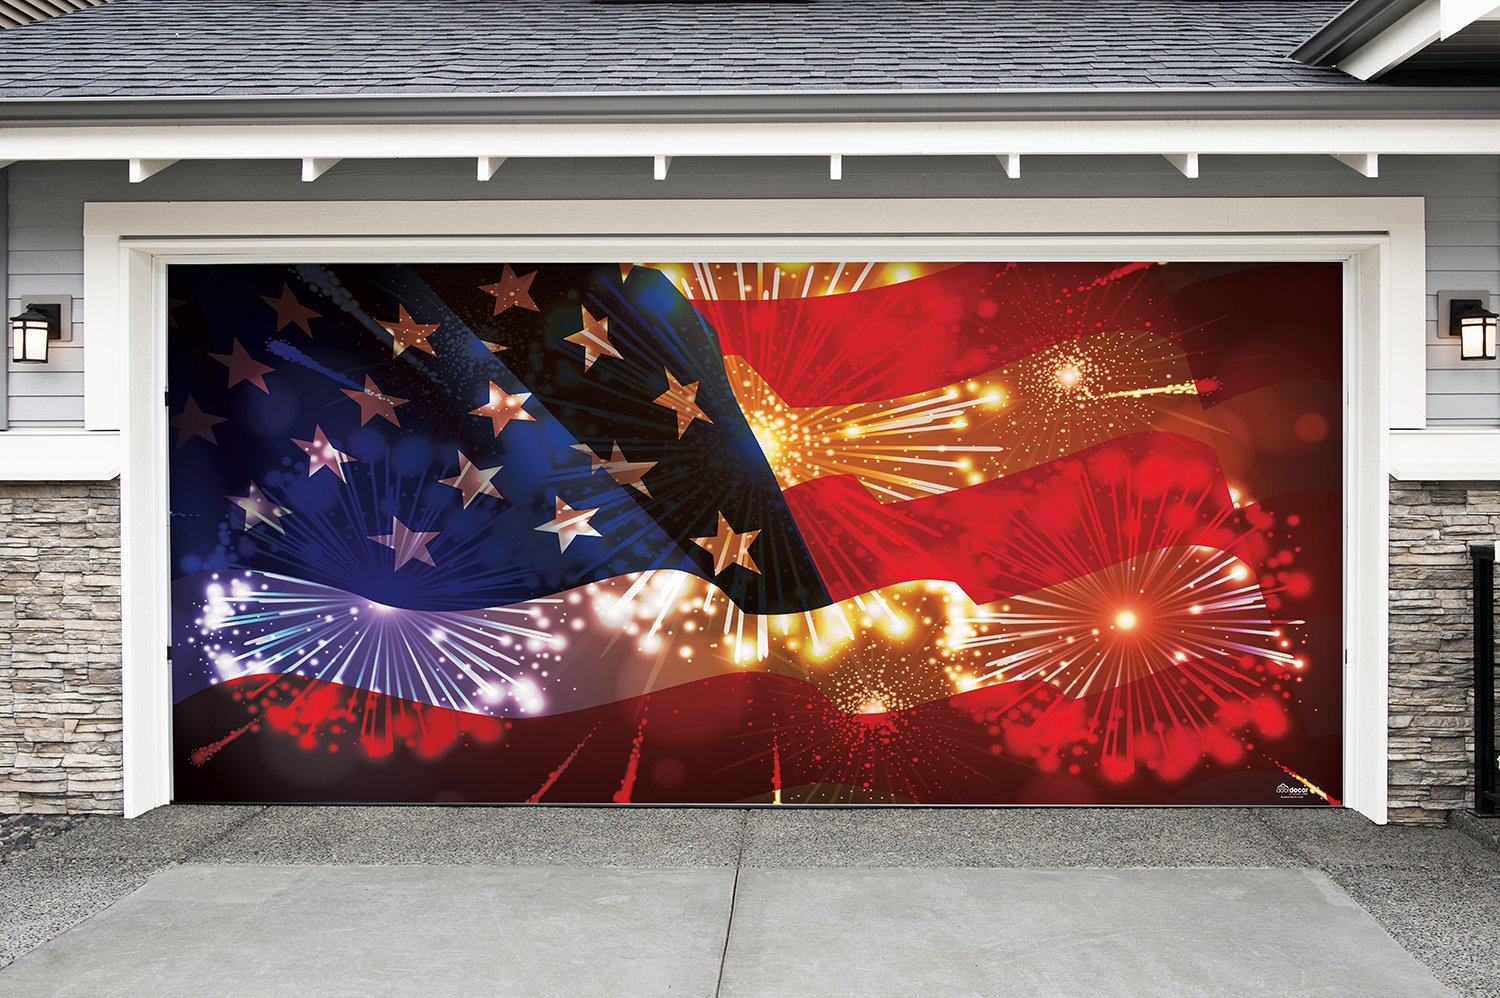 Outdoor Patriotic American Holiday Garage Door Banner Cover Mural Décoration 7'x16' - American Flag and Fireworks - Outdoor Patriotic Garage Door Banner Décor Sign 7'x16' by Victory Corps